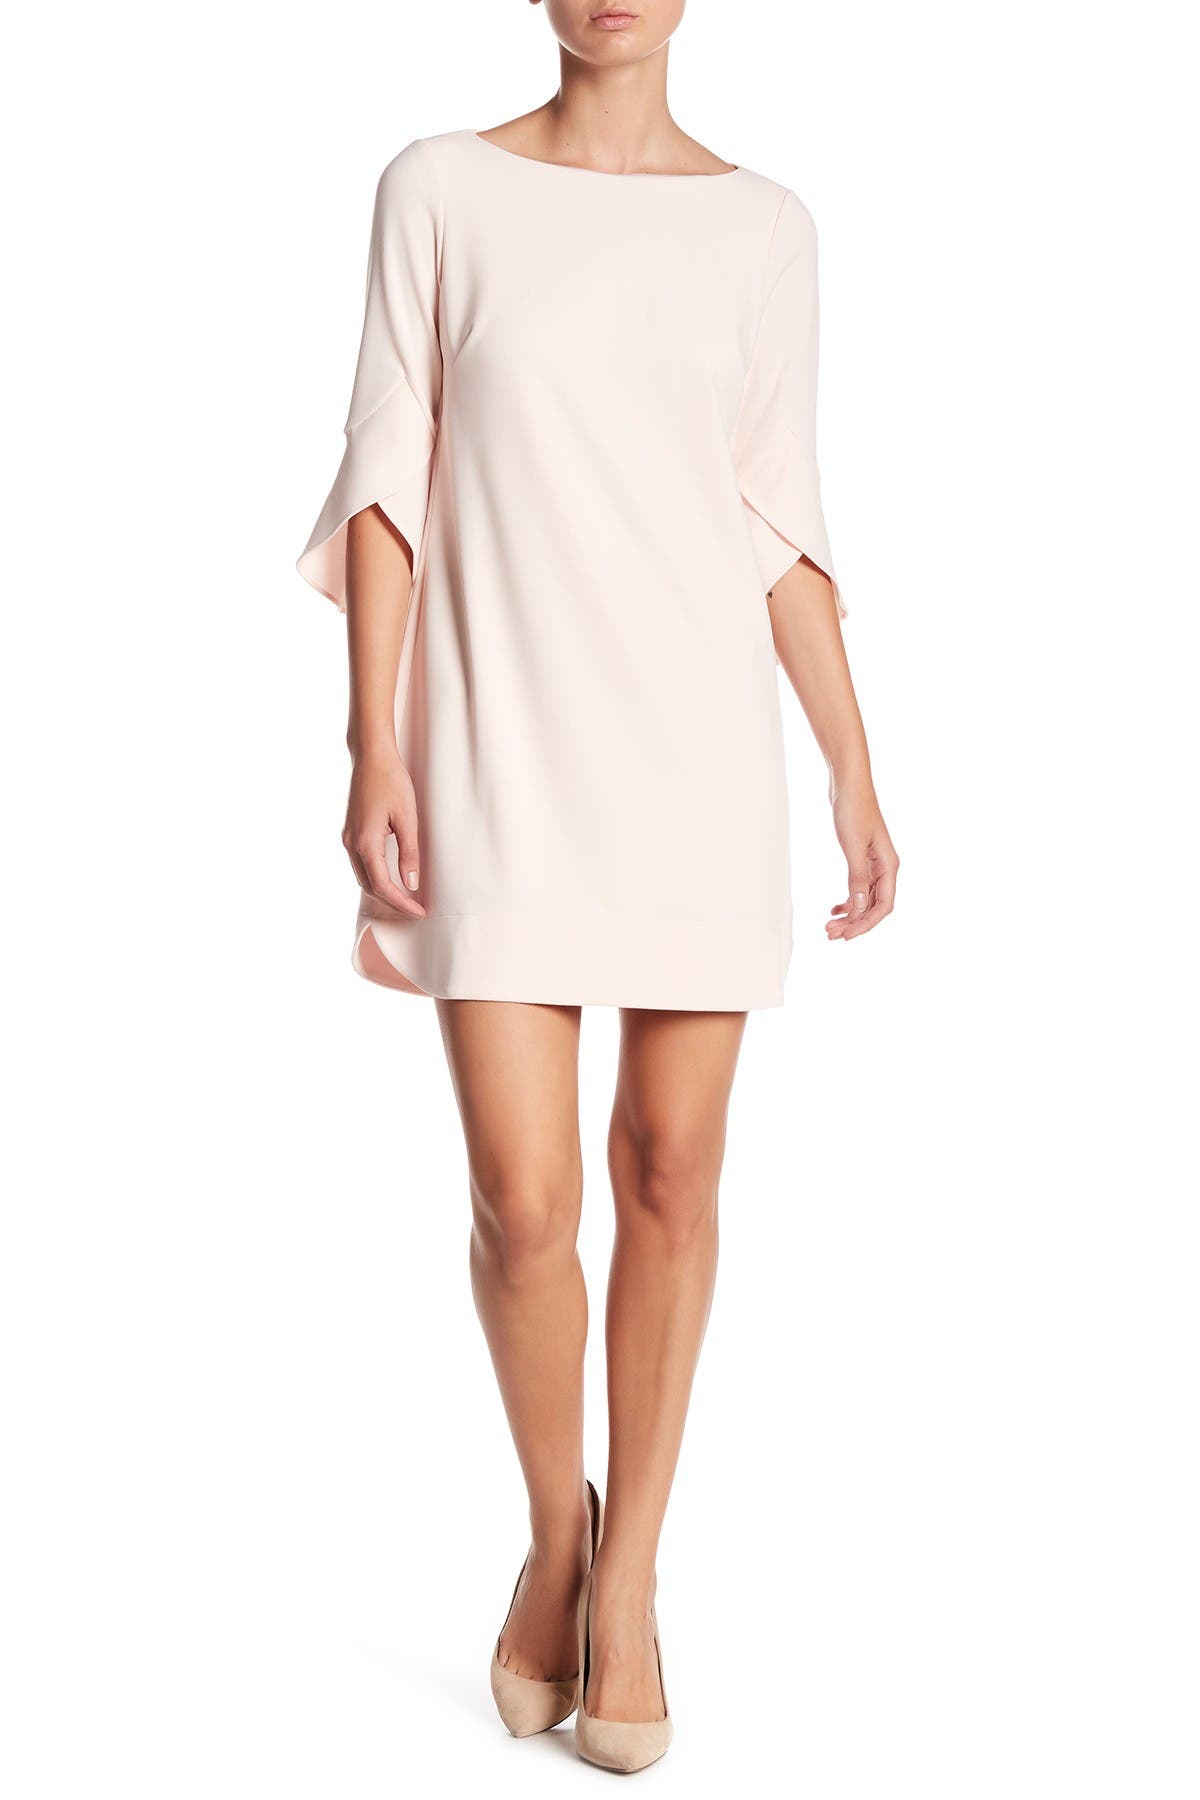 Image of Vince Camuto Tulip Bell Sleeve Dress